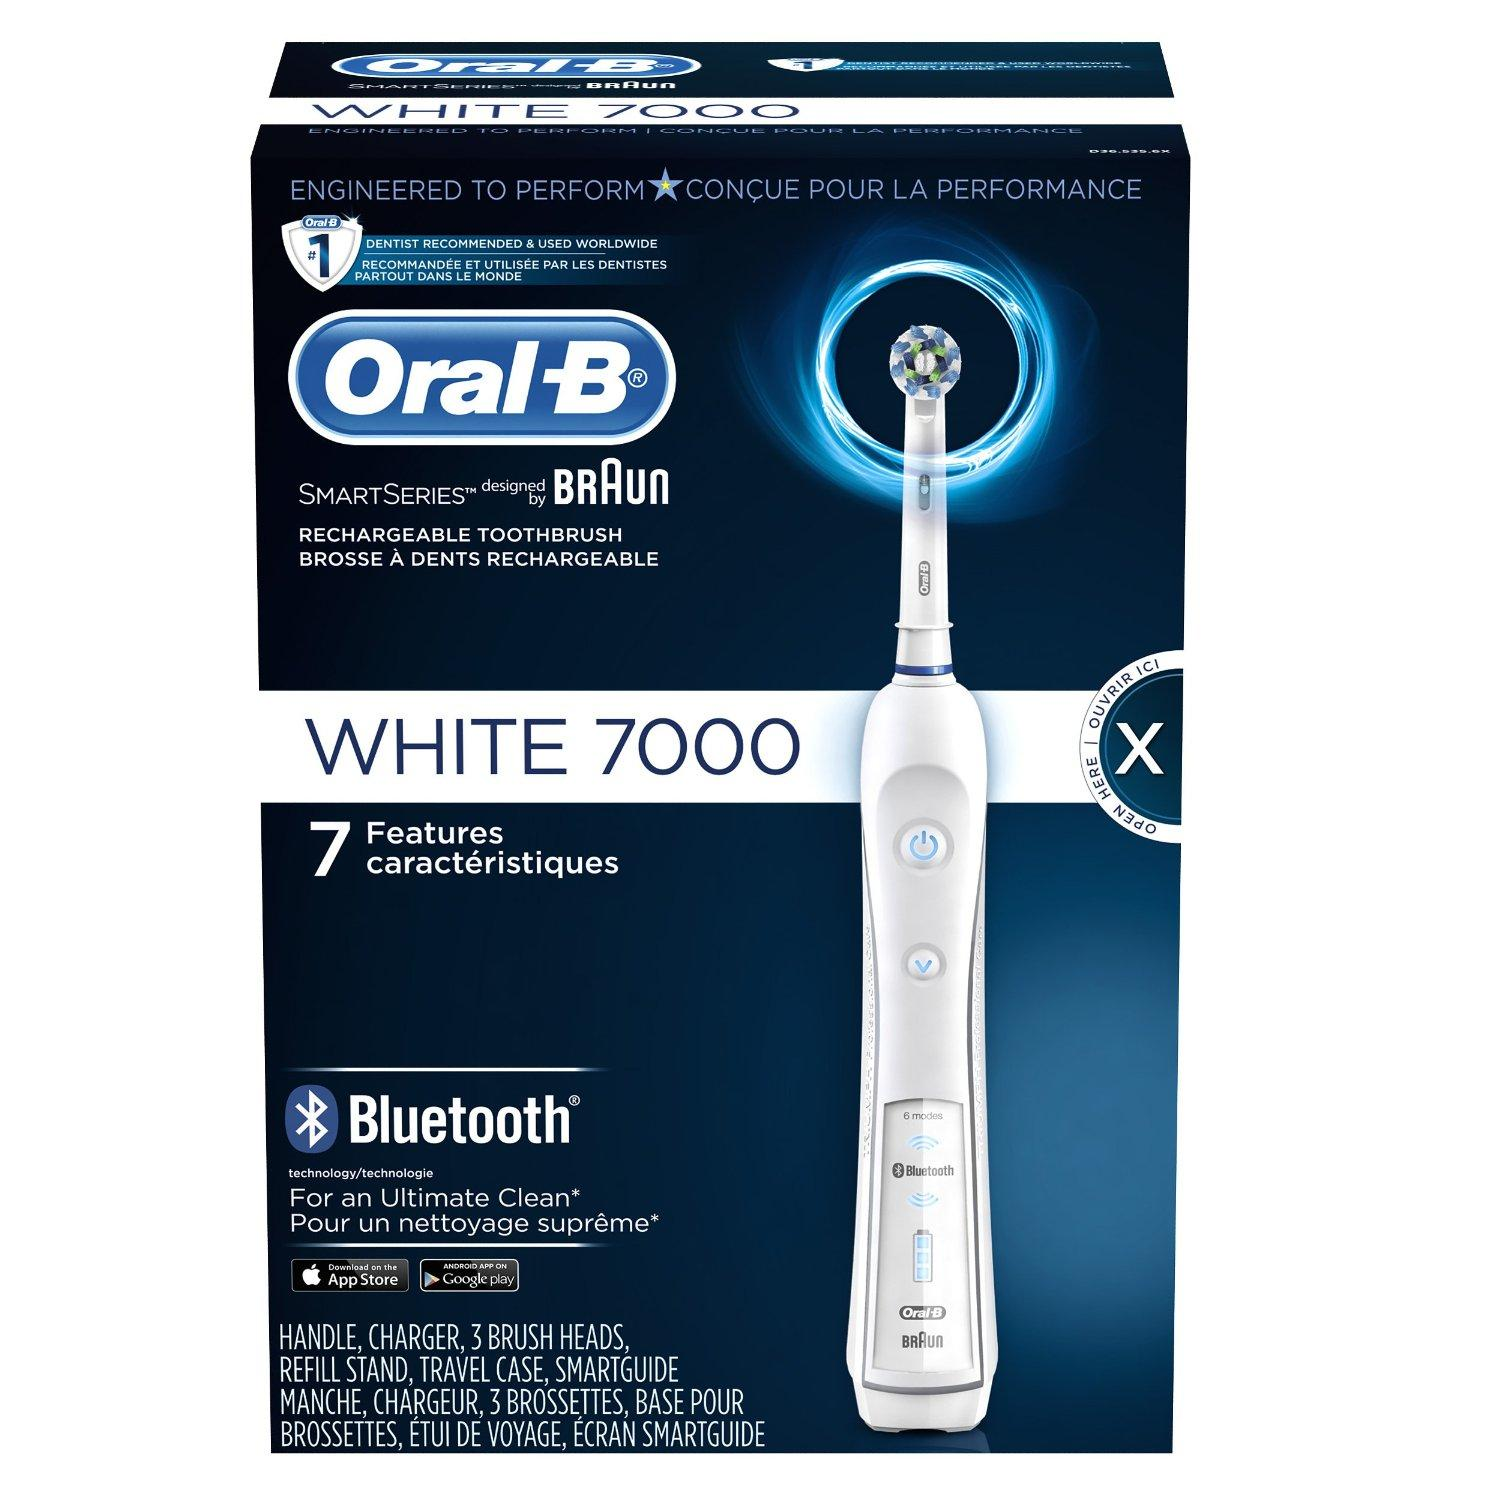 $109.99 Oral-B WHITE 7000 SmartSeries with Bluetooth Electric Rechargeable Power Toothbrush Powered by Braun